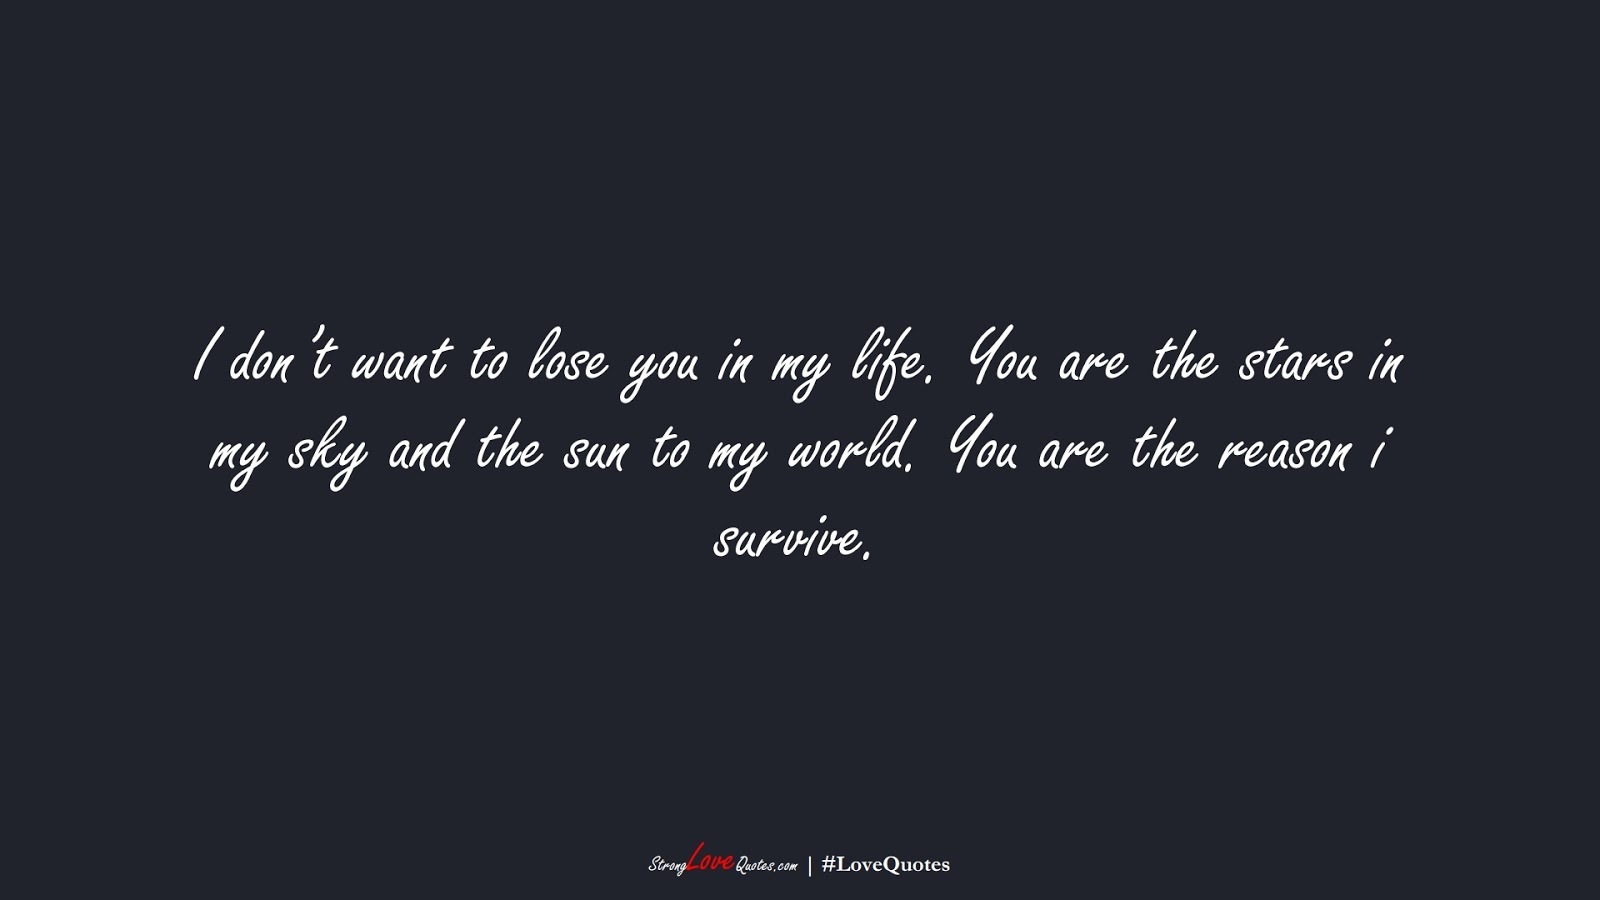 I don't want to lose you in my life. You are the stars in my sky and the sun to my world. You are the reason i survive.FALSE